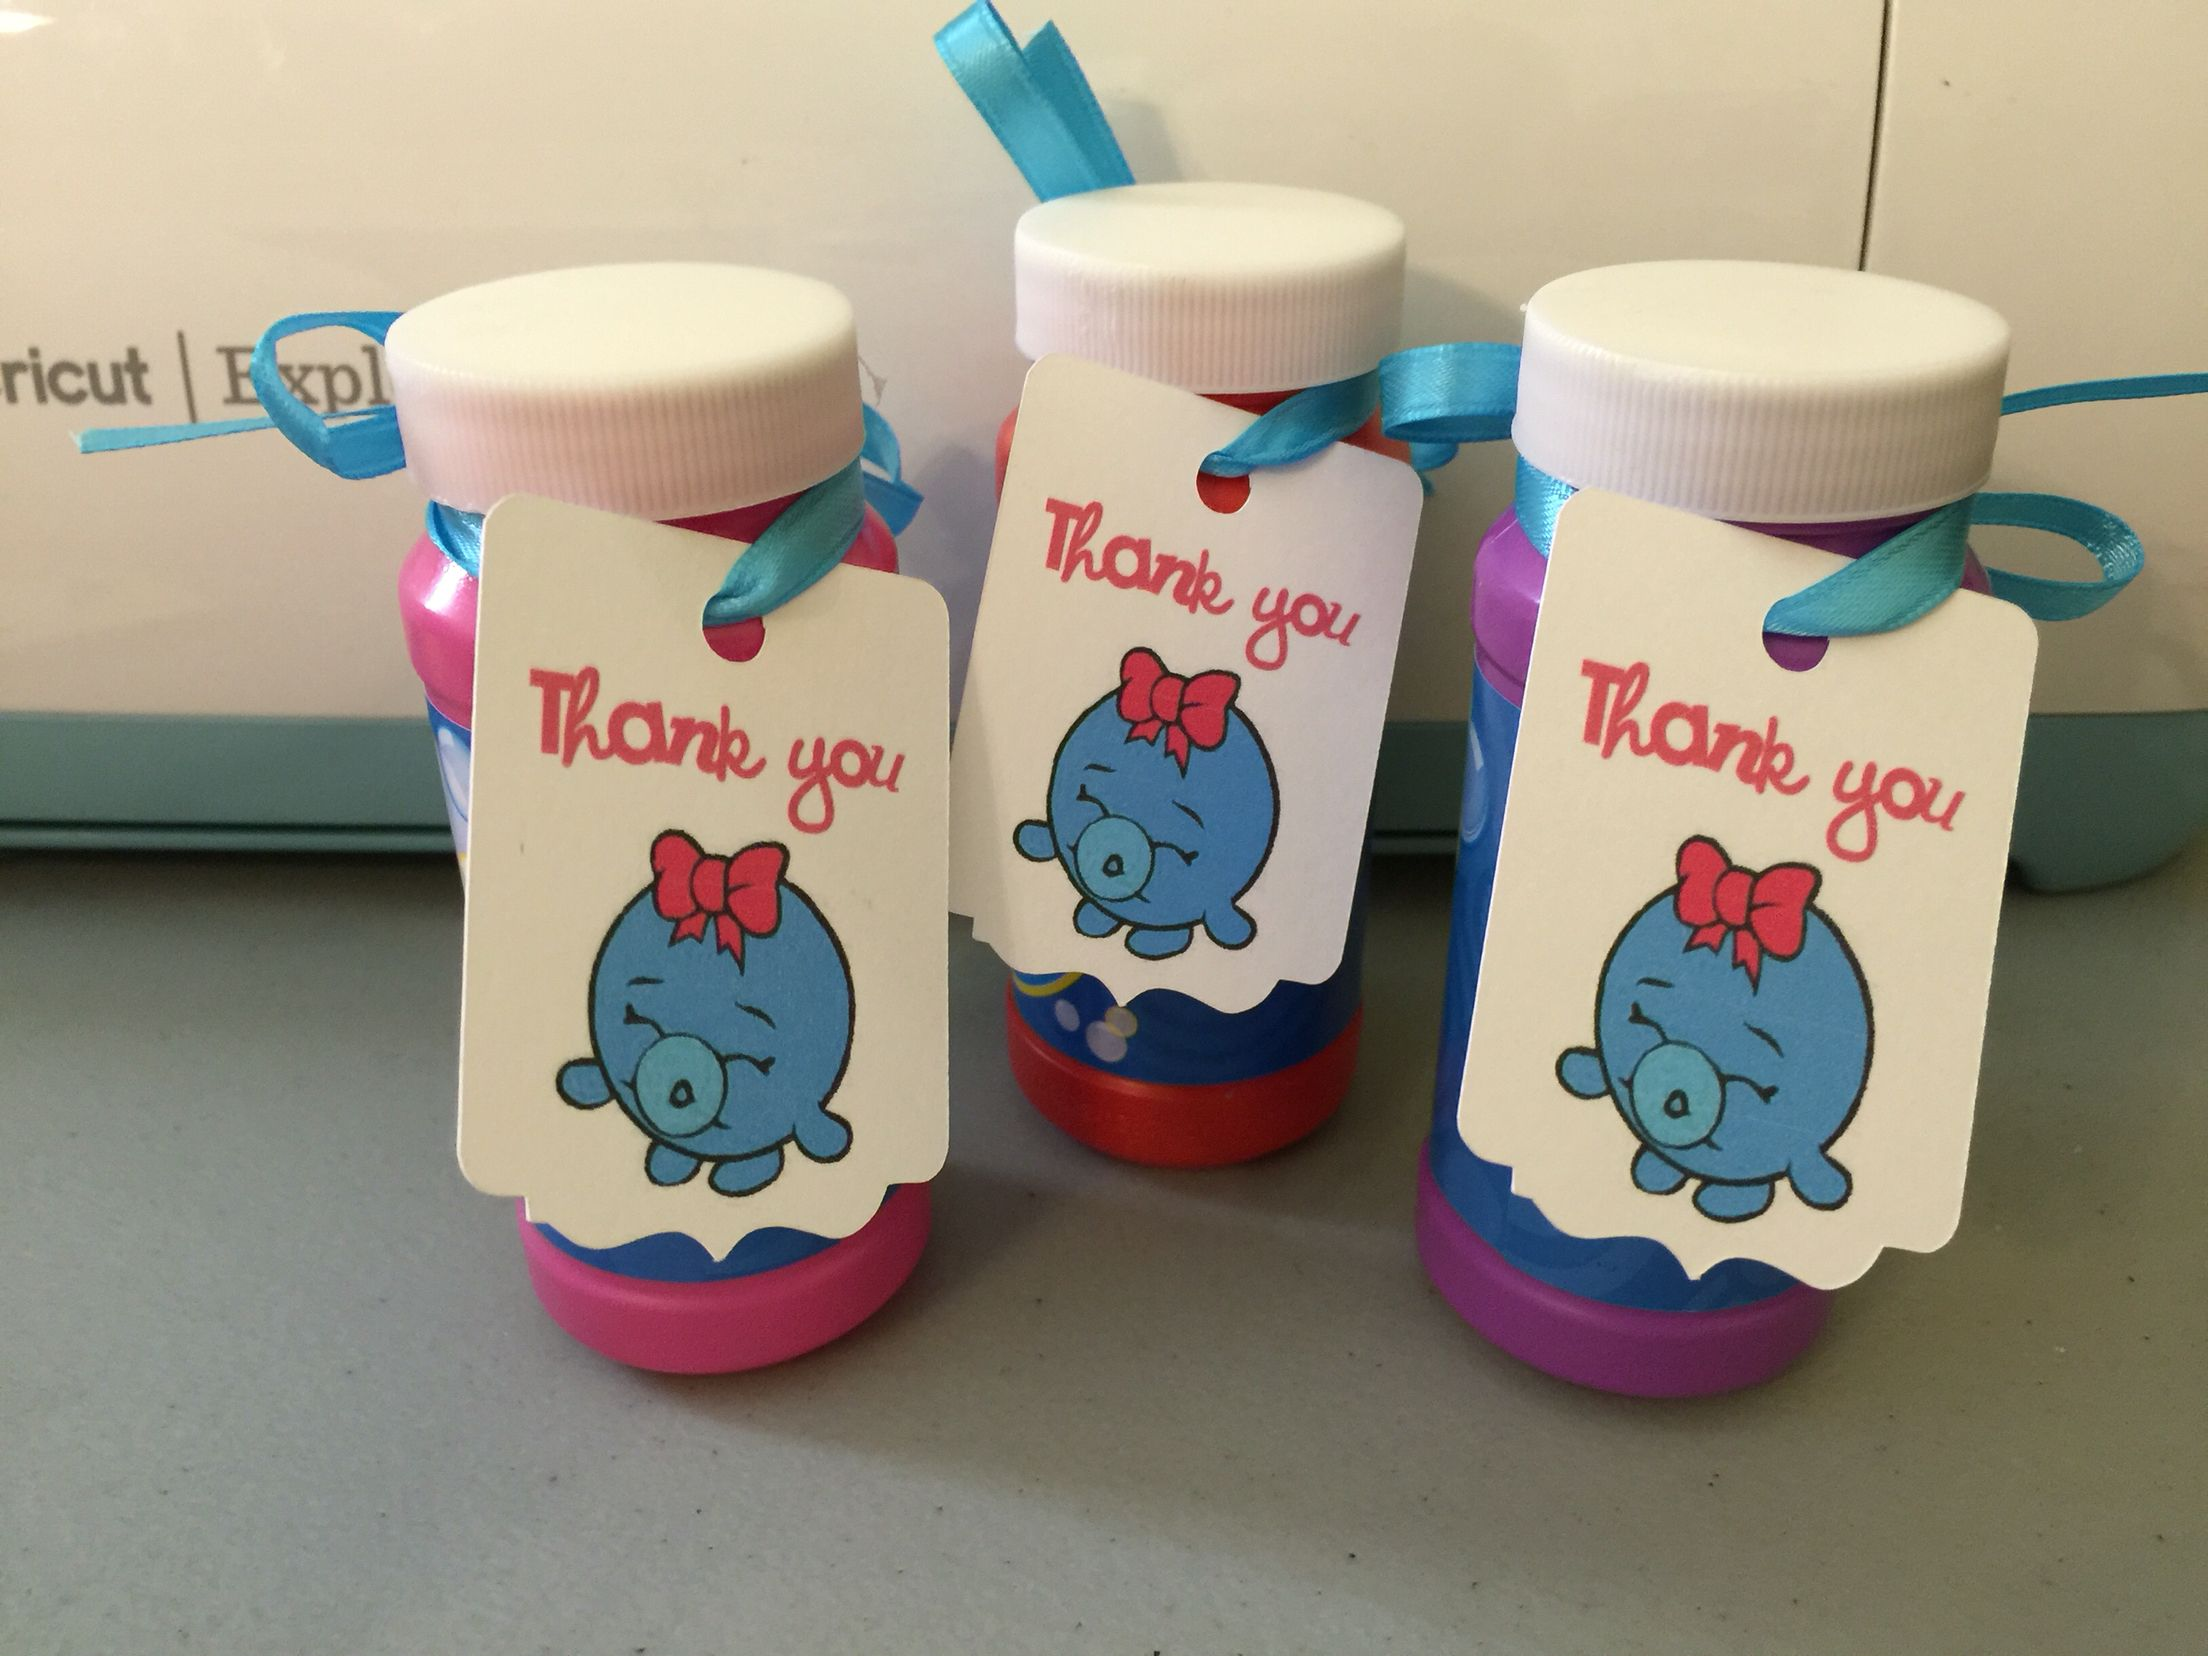 """Bubbles"" the Shopkins Character on a ""Thank You"" tag attached to a bottle of bubbles for party favors."